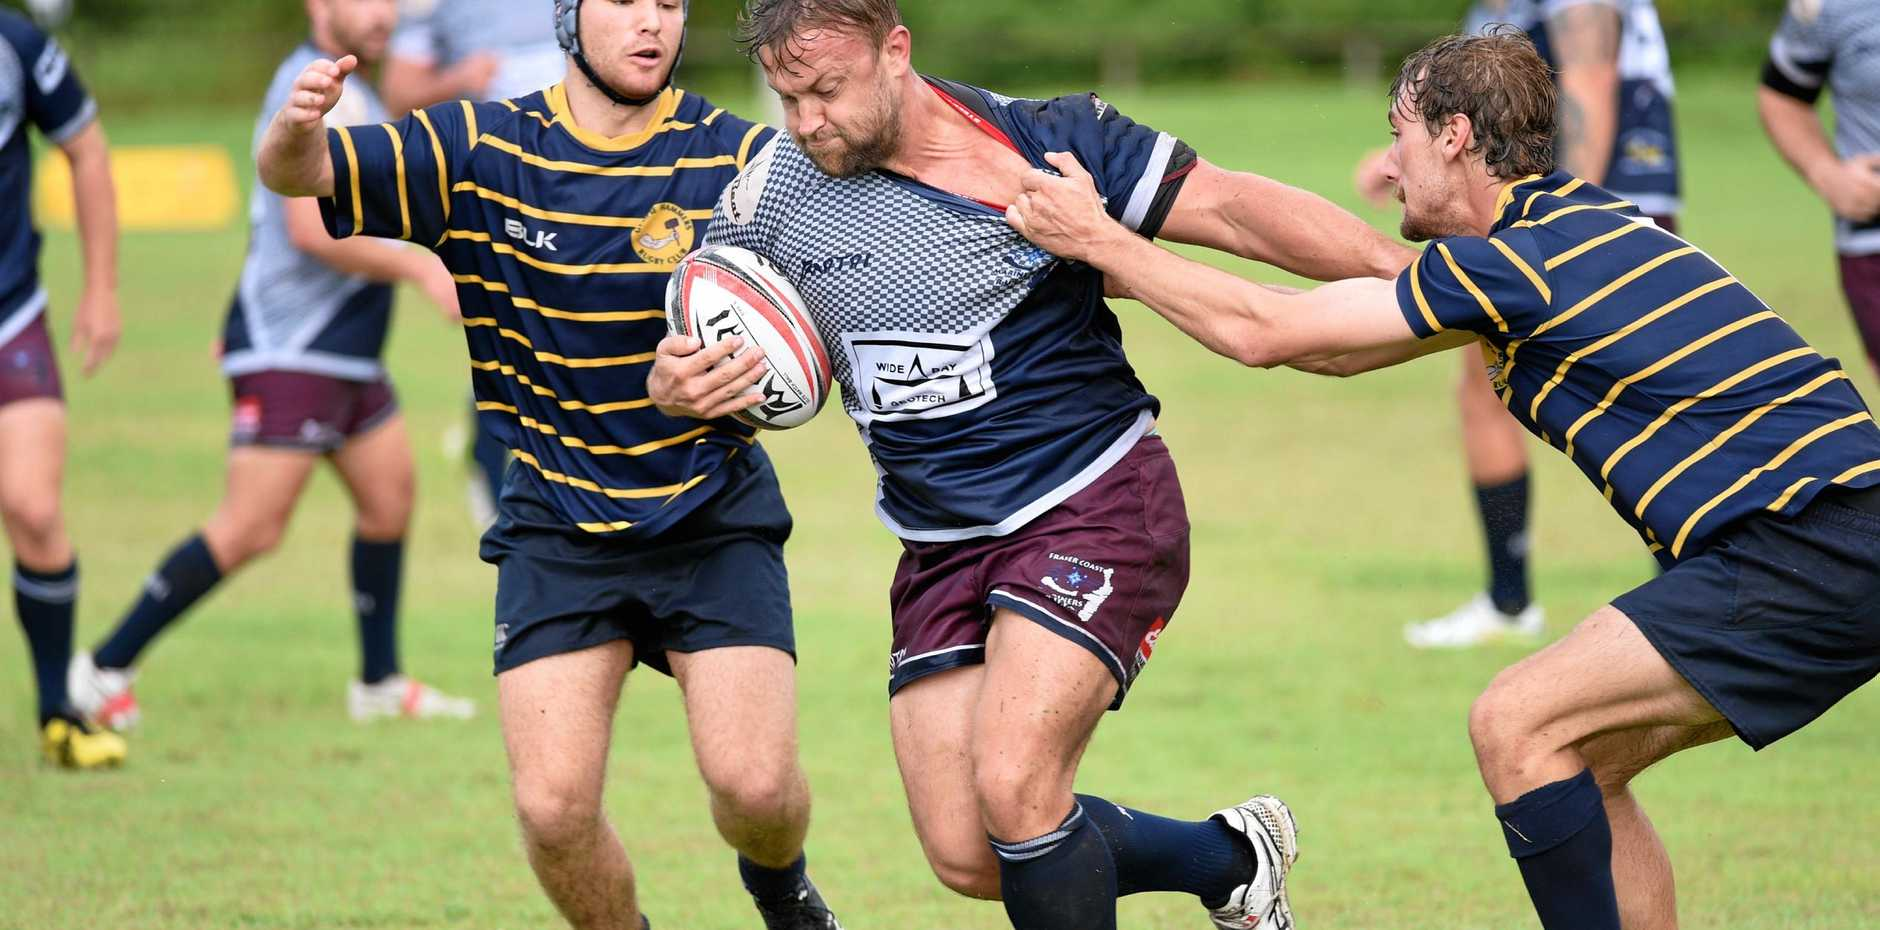 Rugby union - Fraser Coast Mariners v Gympie Hammers. Trent Devere muscles his way through the Gympie defence.